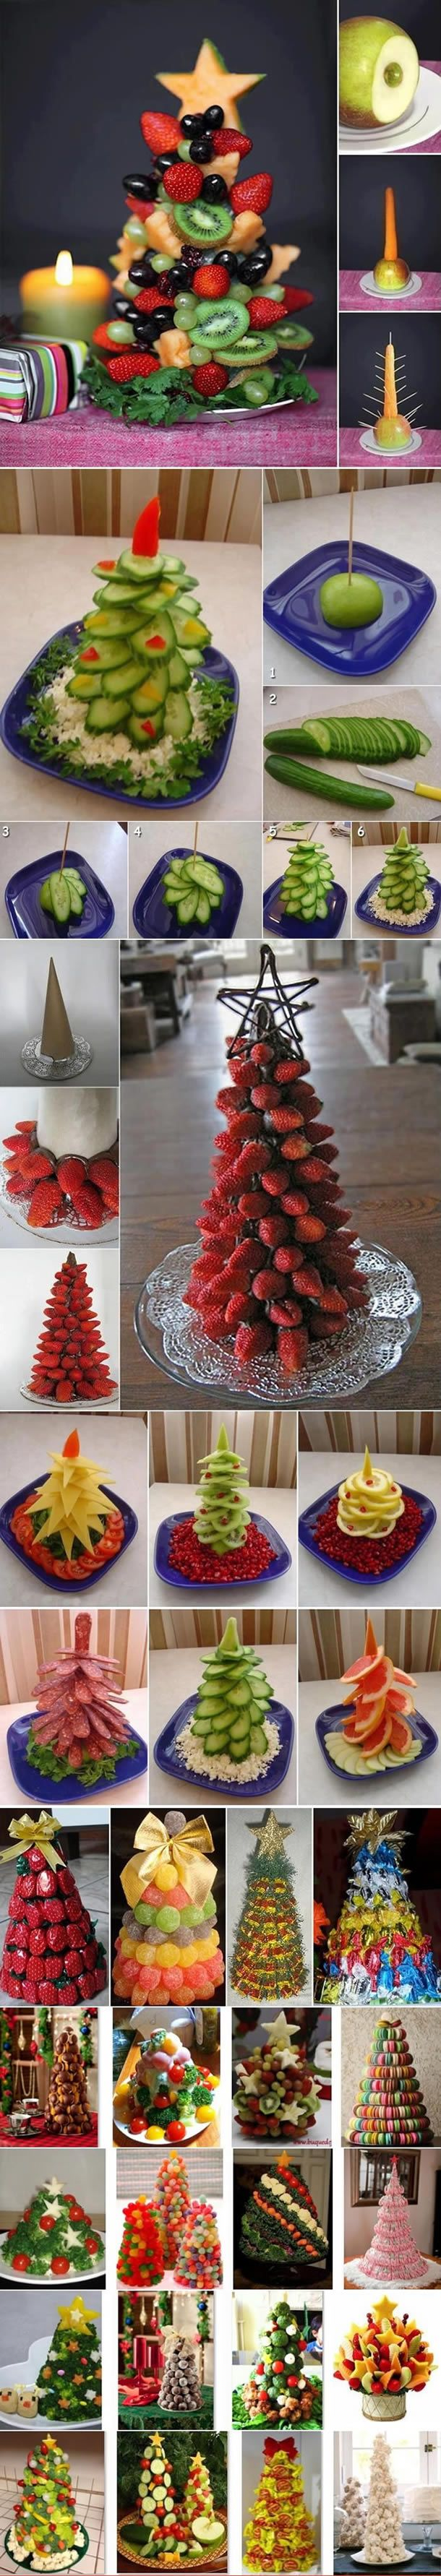 DIY Food Christmas Trees Pictures #charlottepediatricclinic